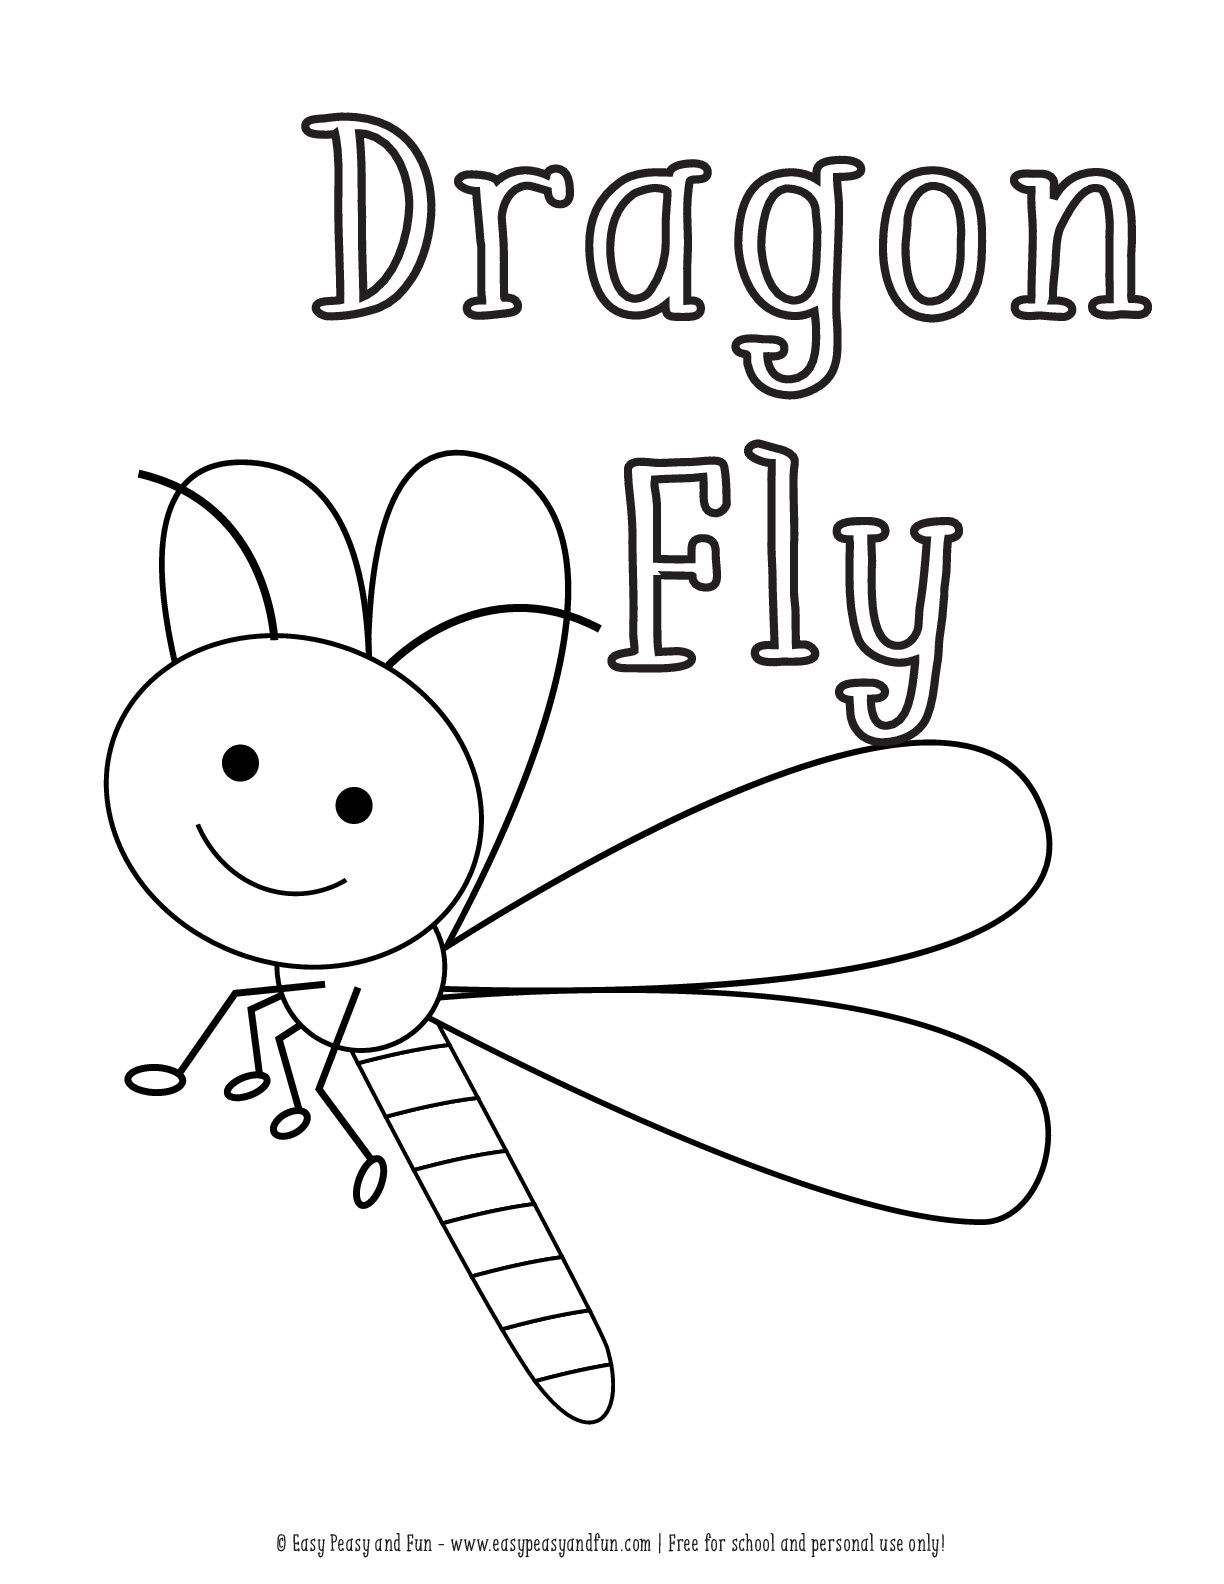 Pin By Choul On Kreativne Kids Journal Bug Coloring Pages Preschool Coloring Pages [ 1584 x 1224 Pixel ]